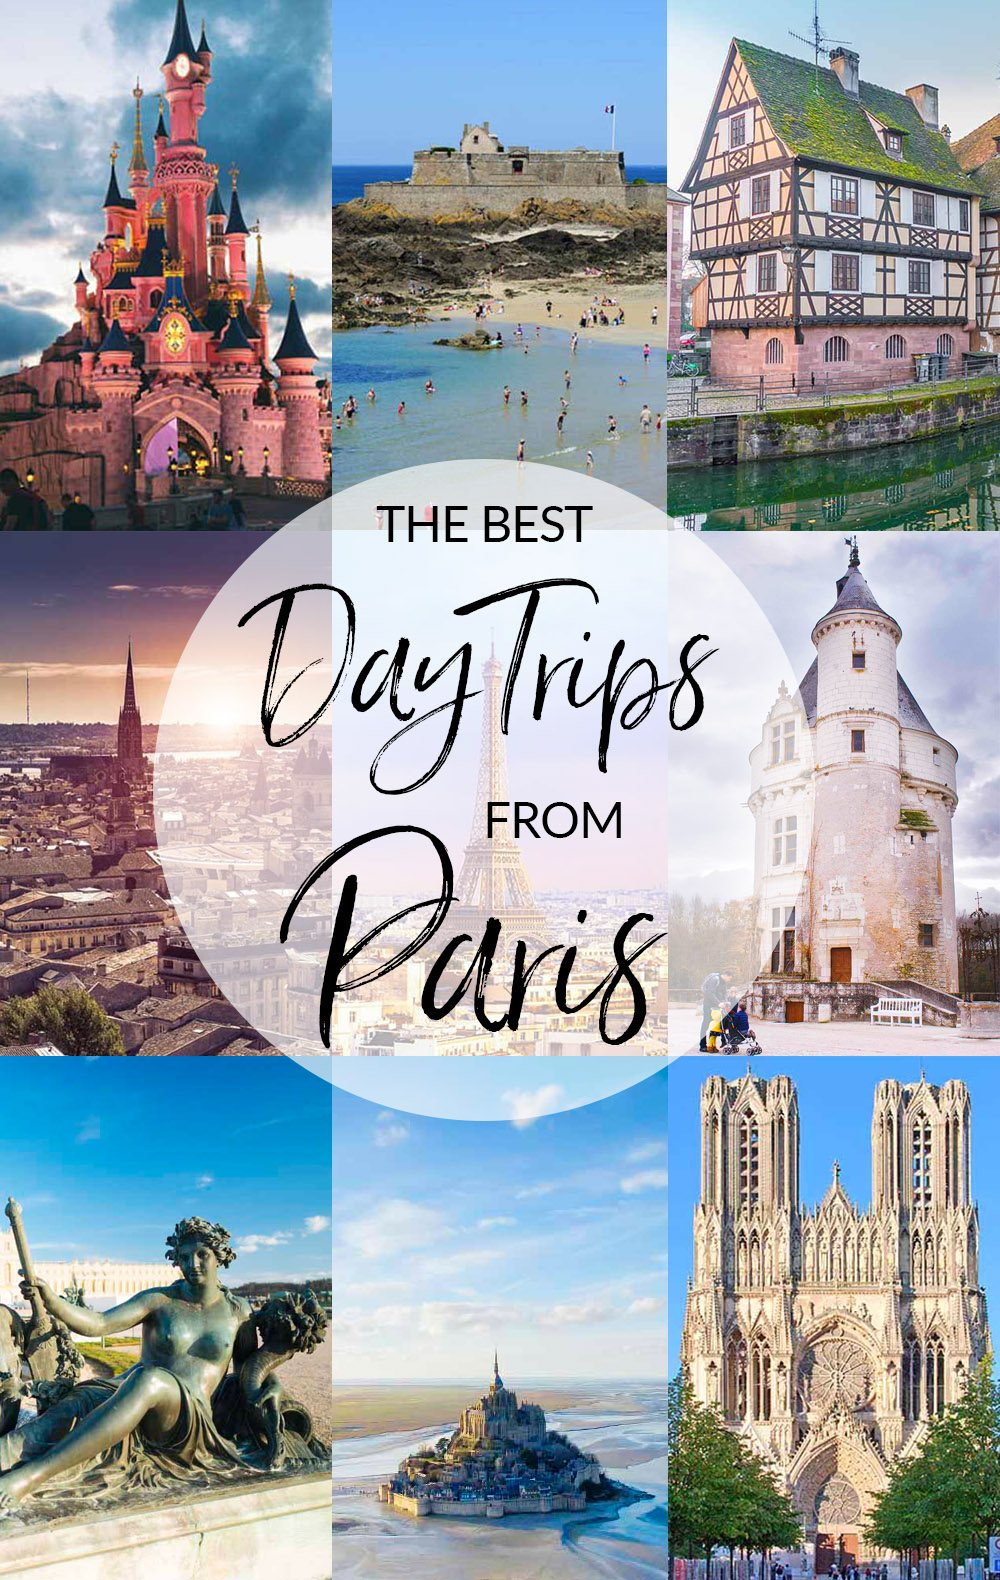 If you're heading to Paris and have a few extra days, get out of the city for a while and discover what France has to offer outside the city of lights. These ten day trips from Paris are our favorite!